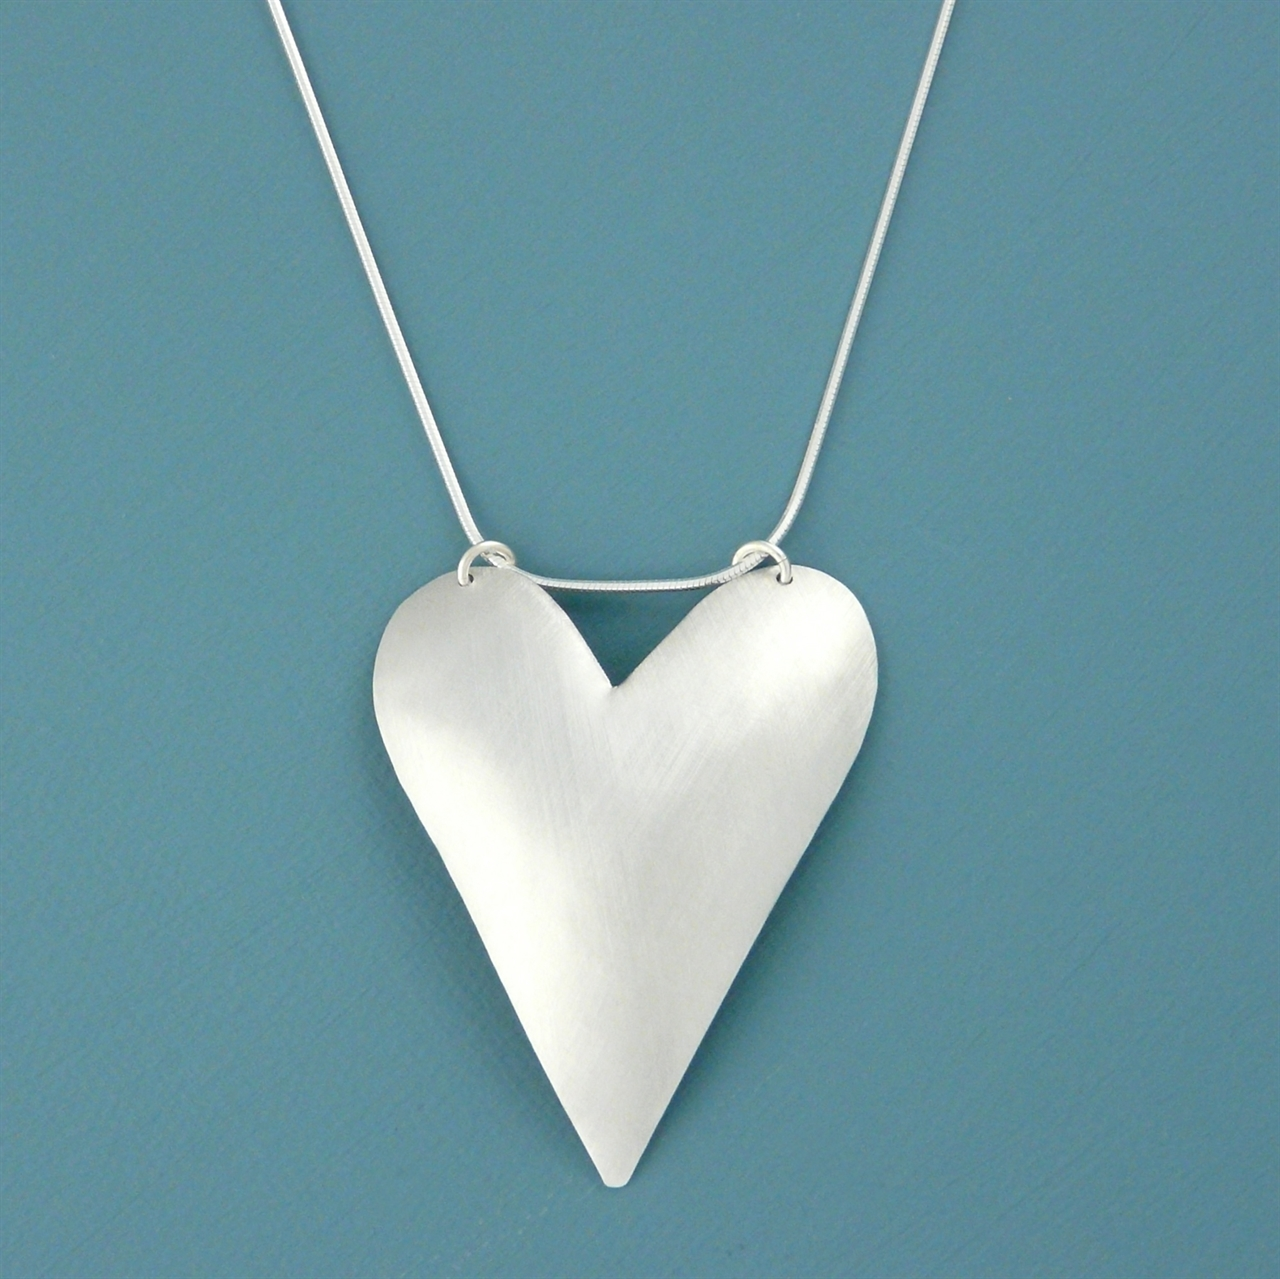 Aluminium large heart necklace handmade jewellery by kate hamilton picture of aluminium large heart necklace js13 a mozeypictures Gallery